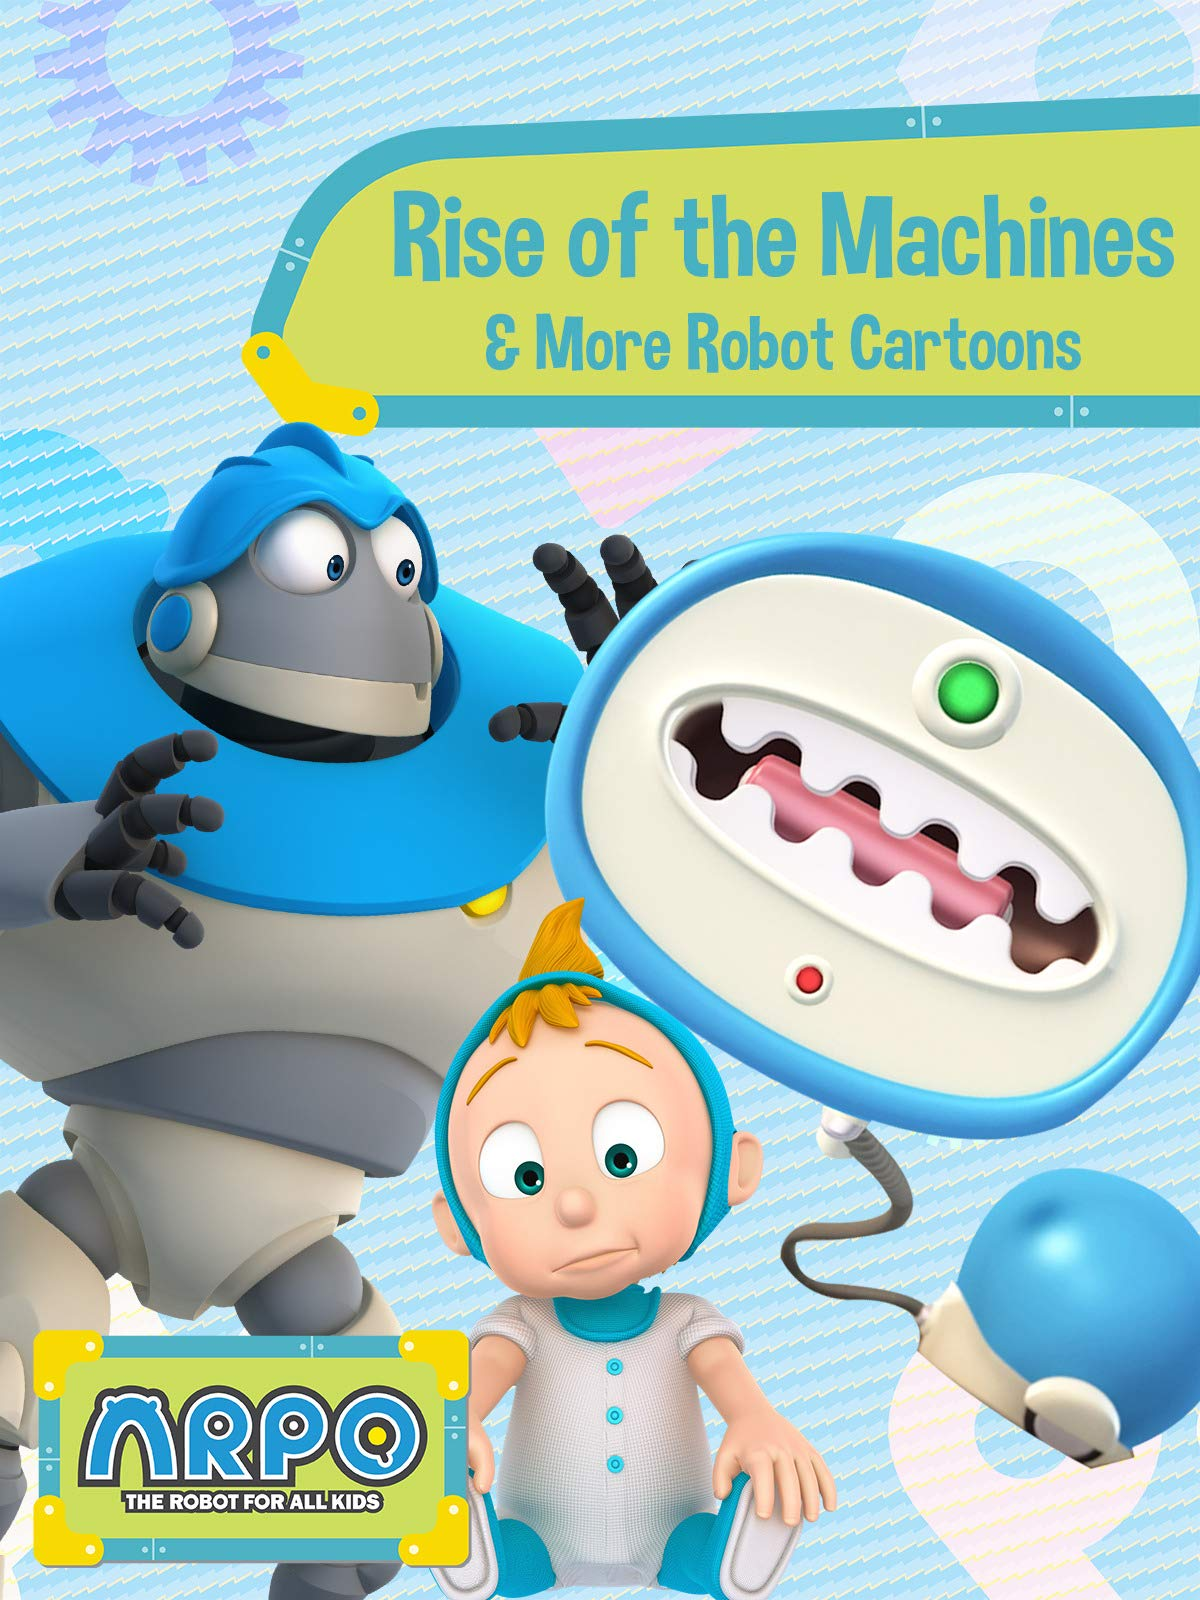 Arpo the Robot for All Kids - Rise of the Machines & More Robot Cartoons